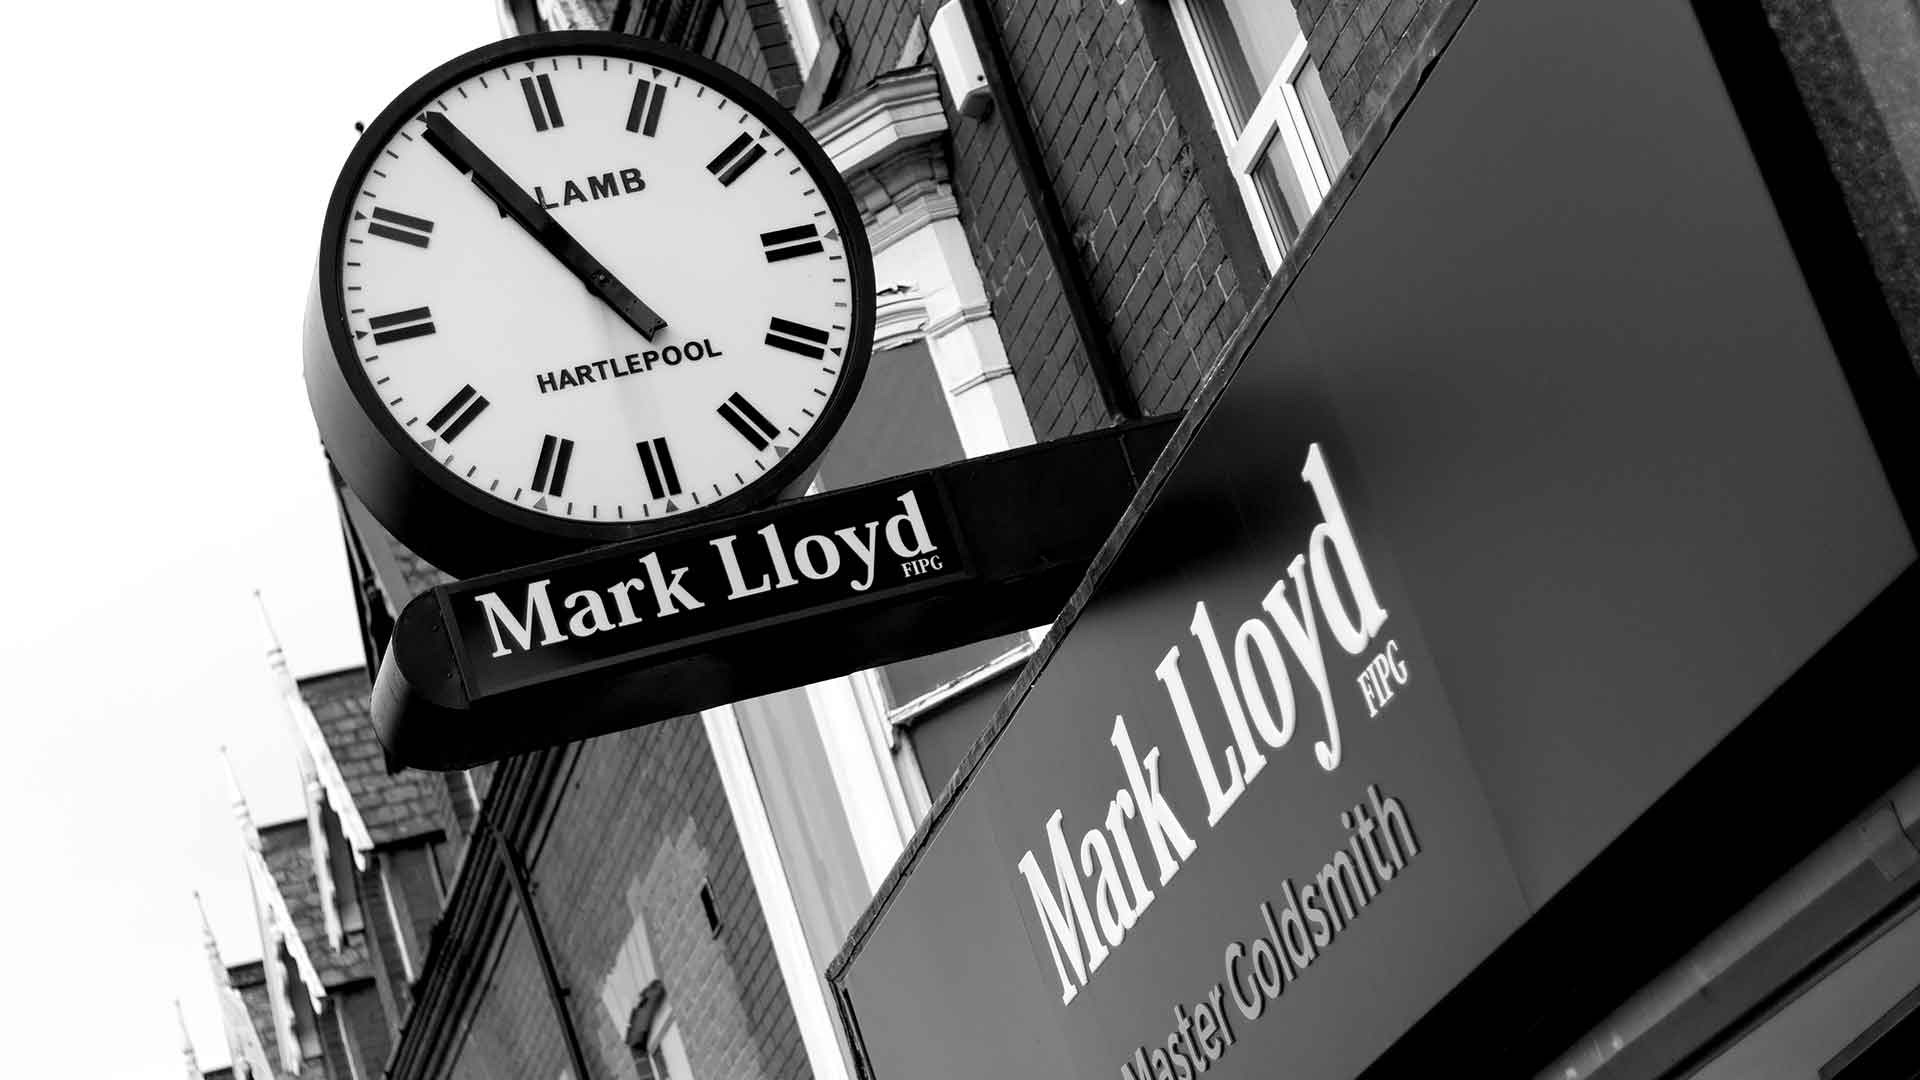 Mark-Lloyd